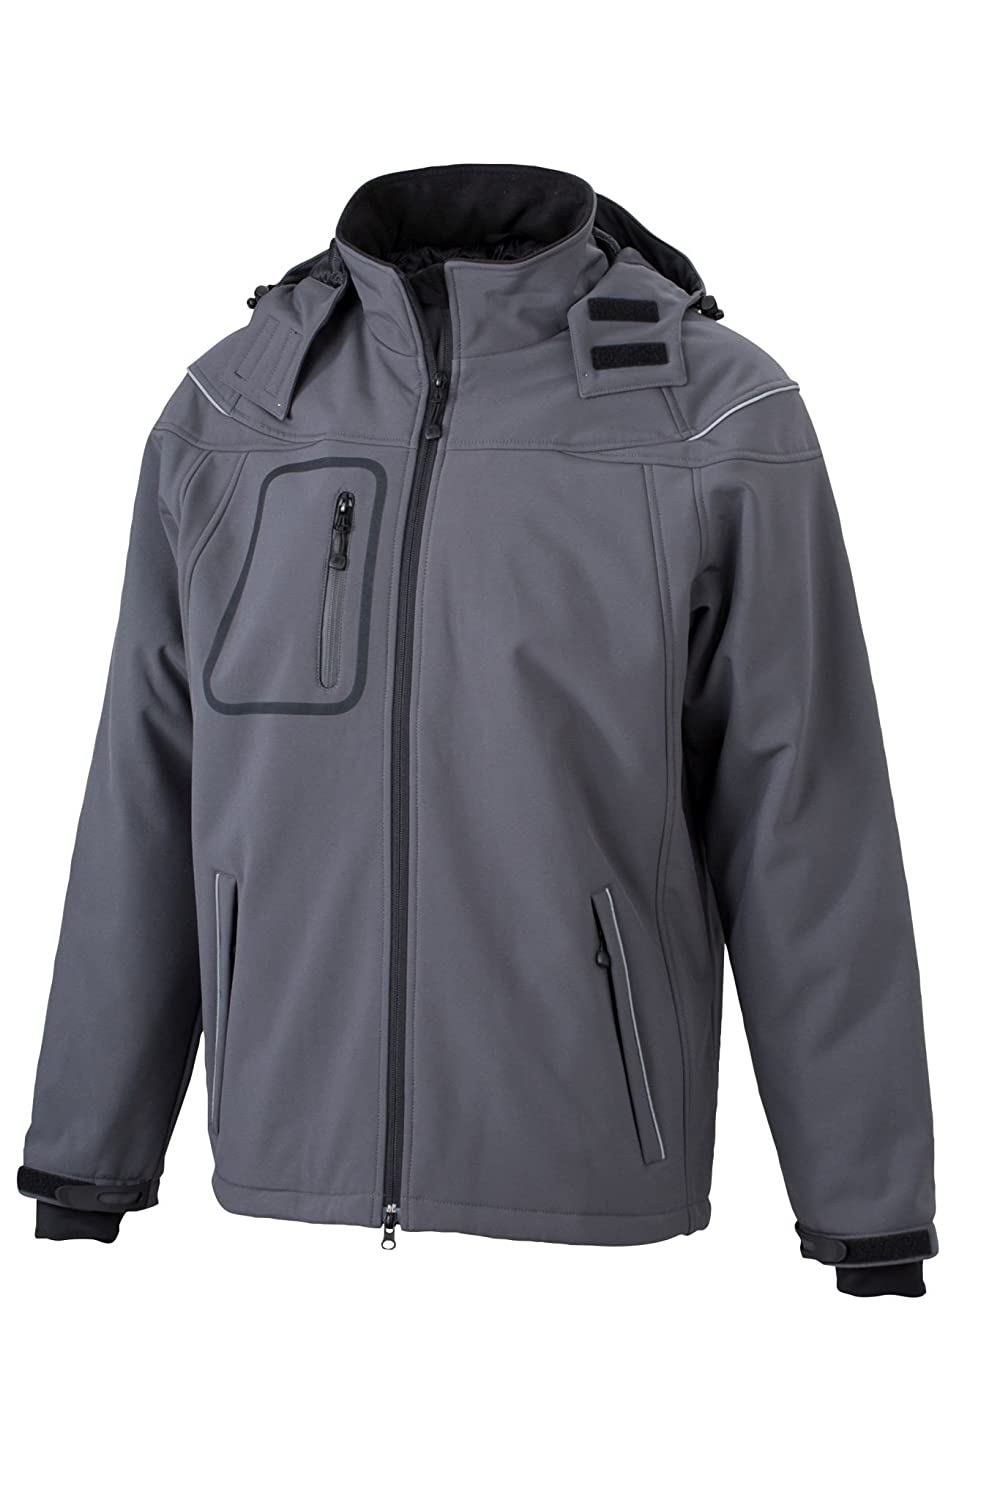 Herren 3-Lagen Winter Softshell Jacke | James & Nicholson | JN 1000